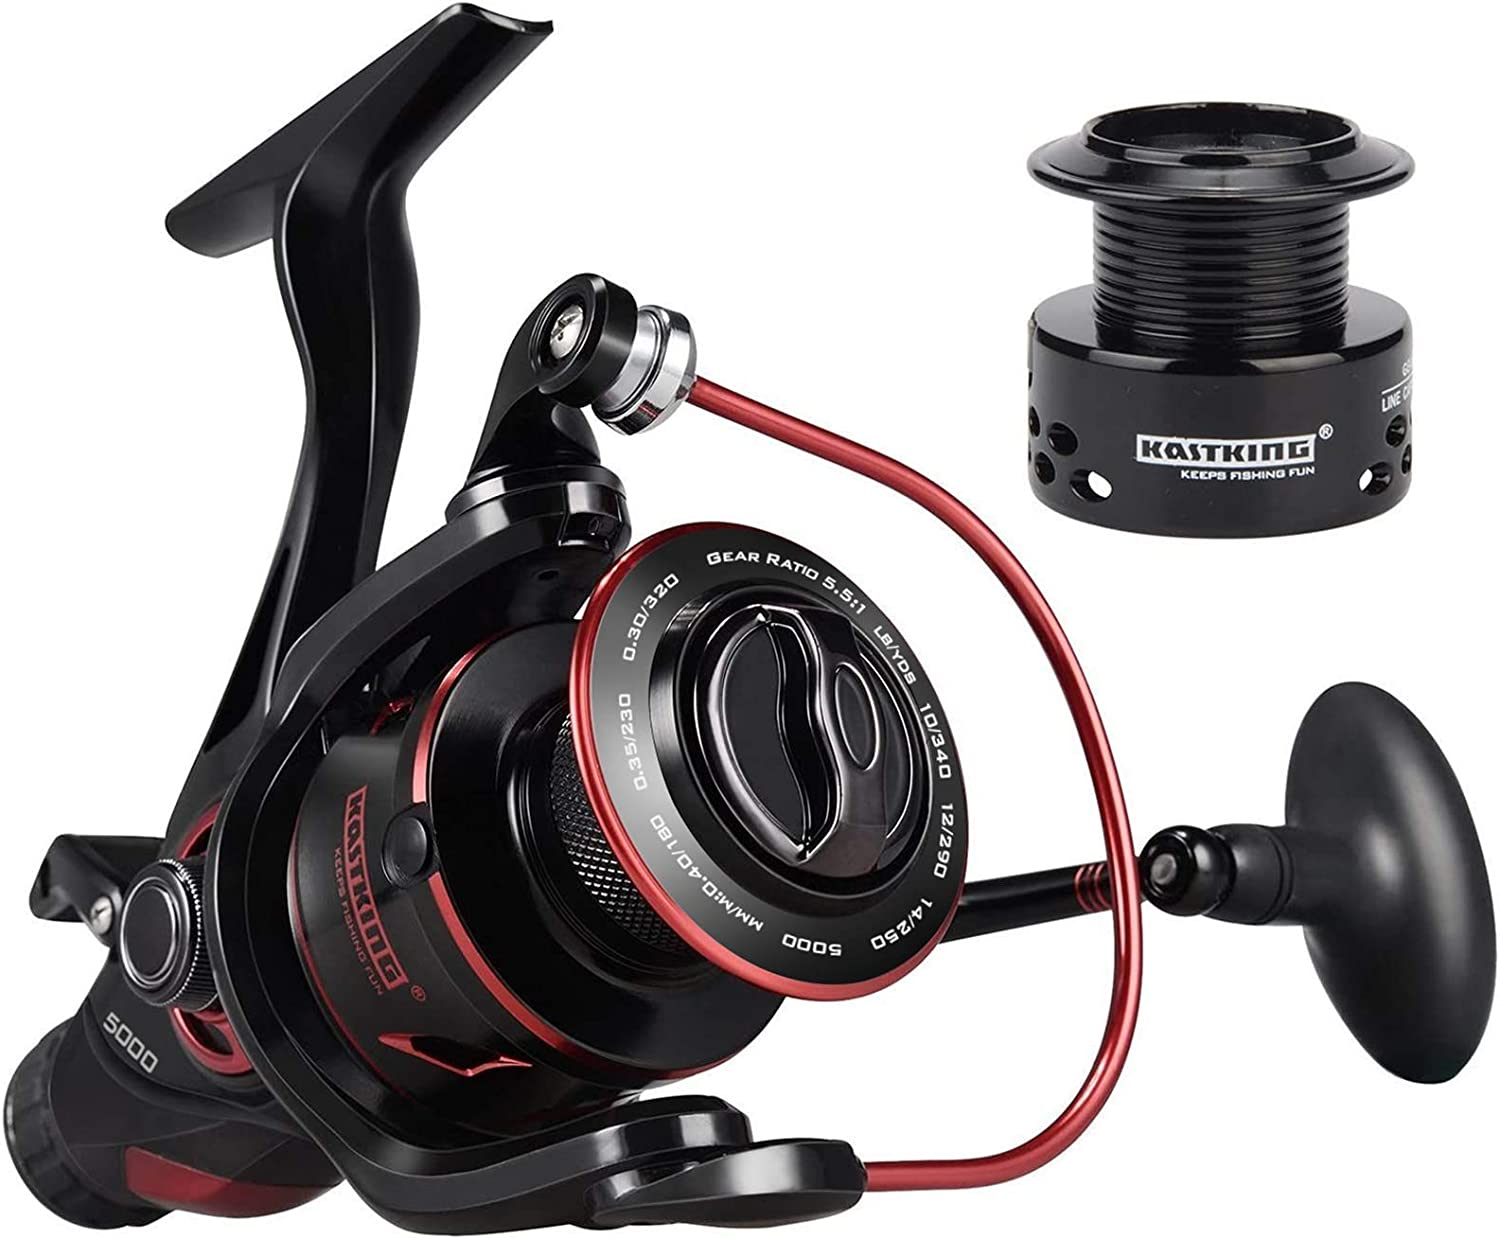 Best Spinning Reel: KastKing Sharky Baitfeeder III Spinning Reel